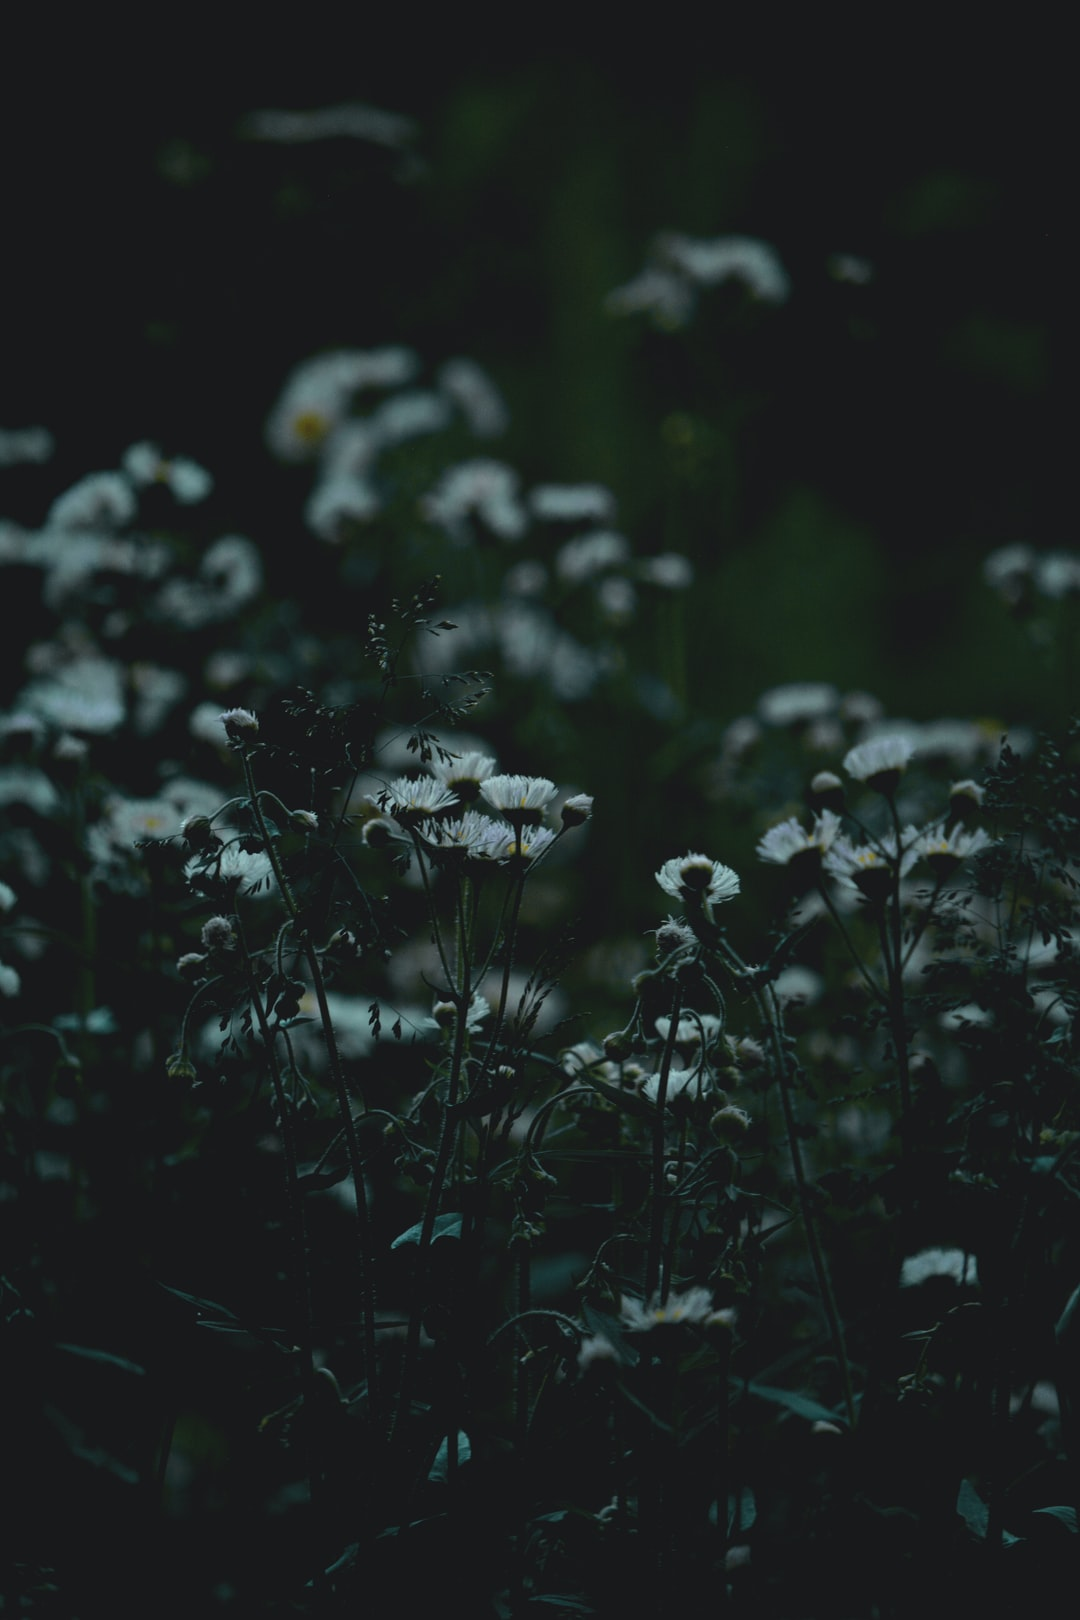 A secret garden with white wildflowers at dusk